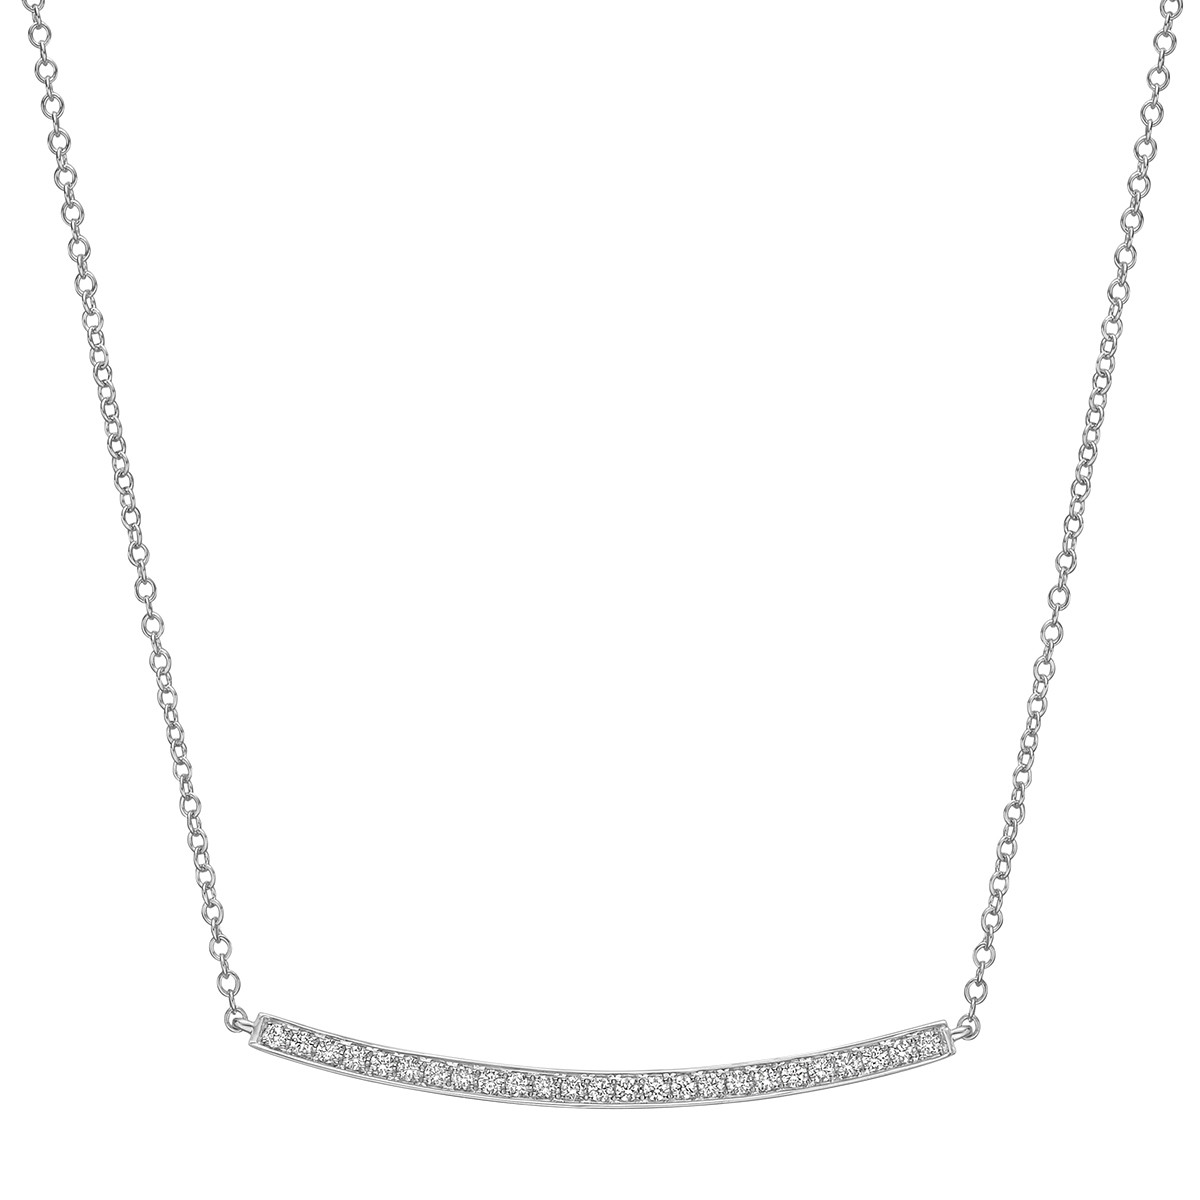 18k White Gold & Diamond Curving Bar Pendant